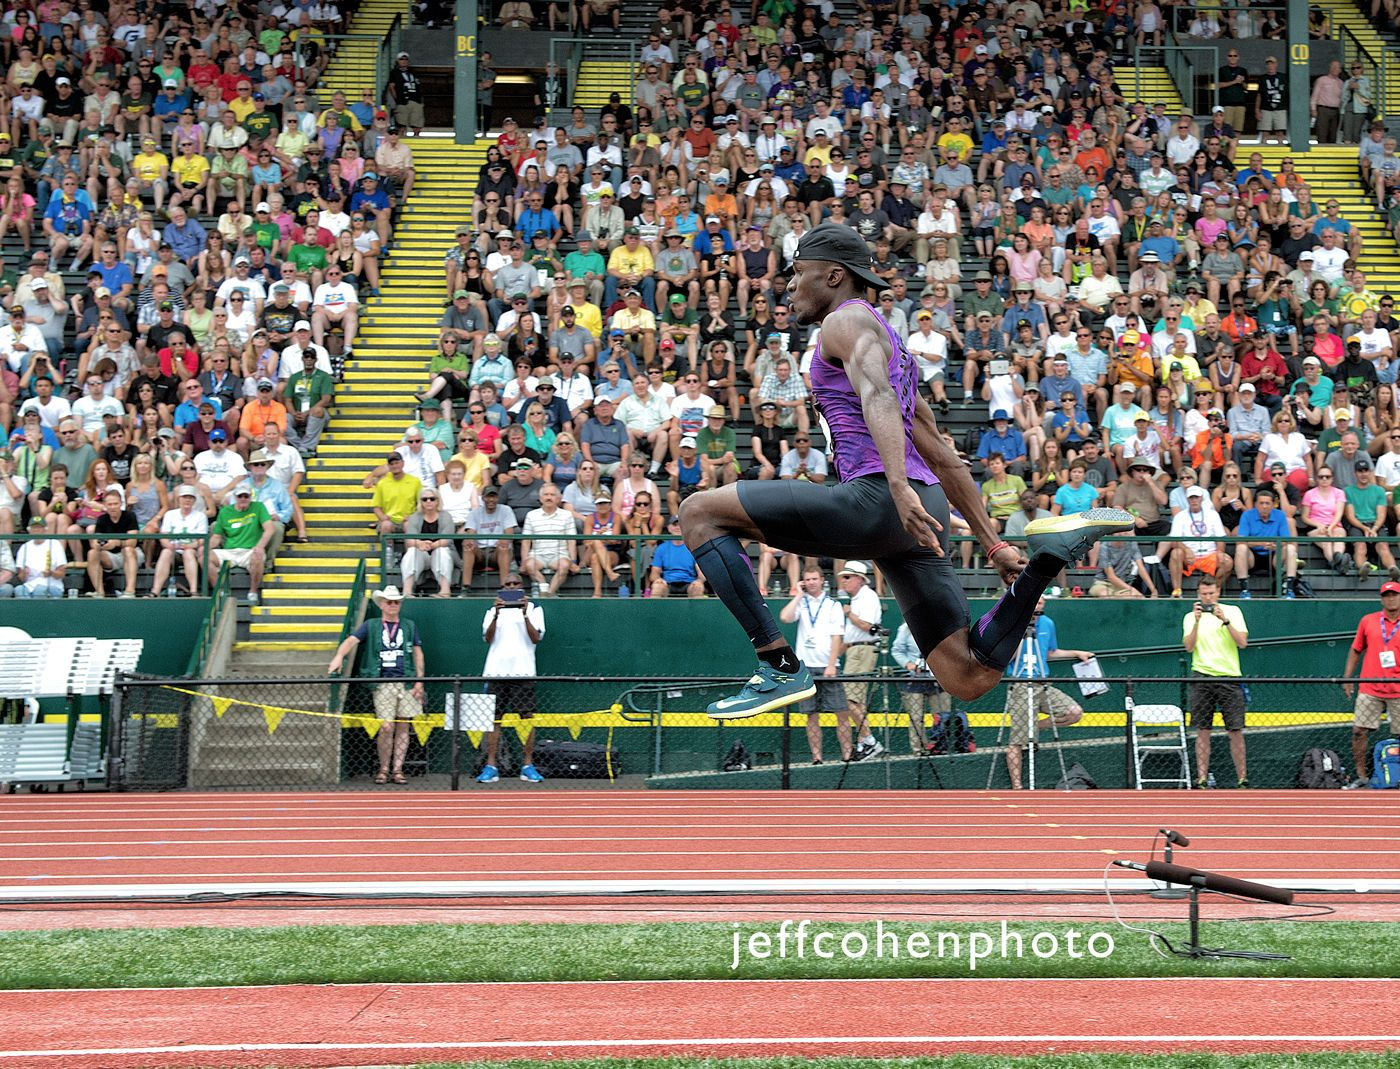 1r2015_usaoutdoors_day_4_claye_lj_jeff_cohen_0237__web.jpg